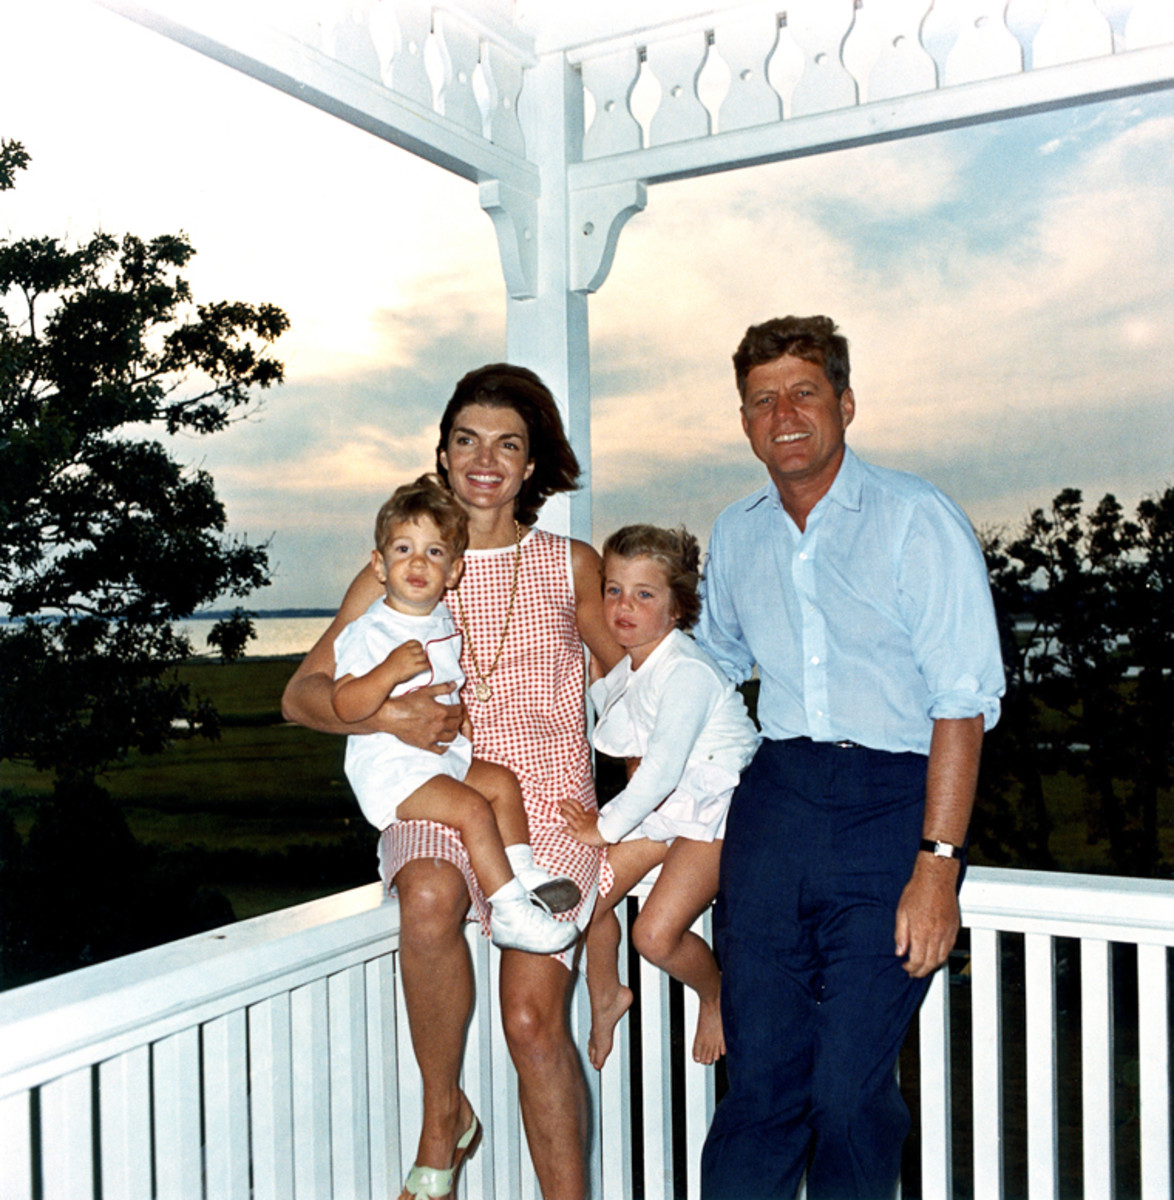 President John F. Kennedy, First Lady Jacqueline Kennedy, and their children John, Jr. and Caroline, at their summer house in Hyannis Port, Massachusetts. August 4, 1962